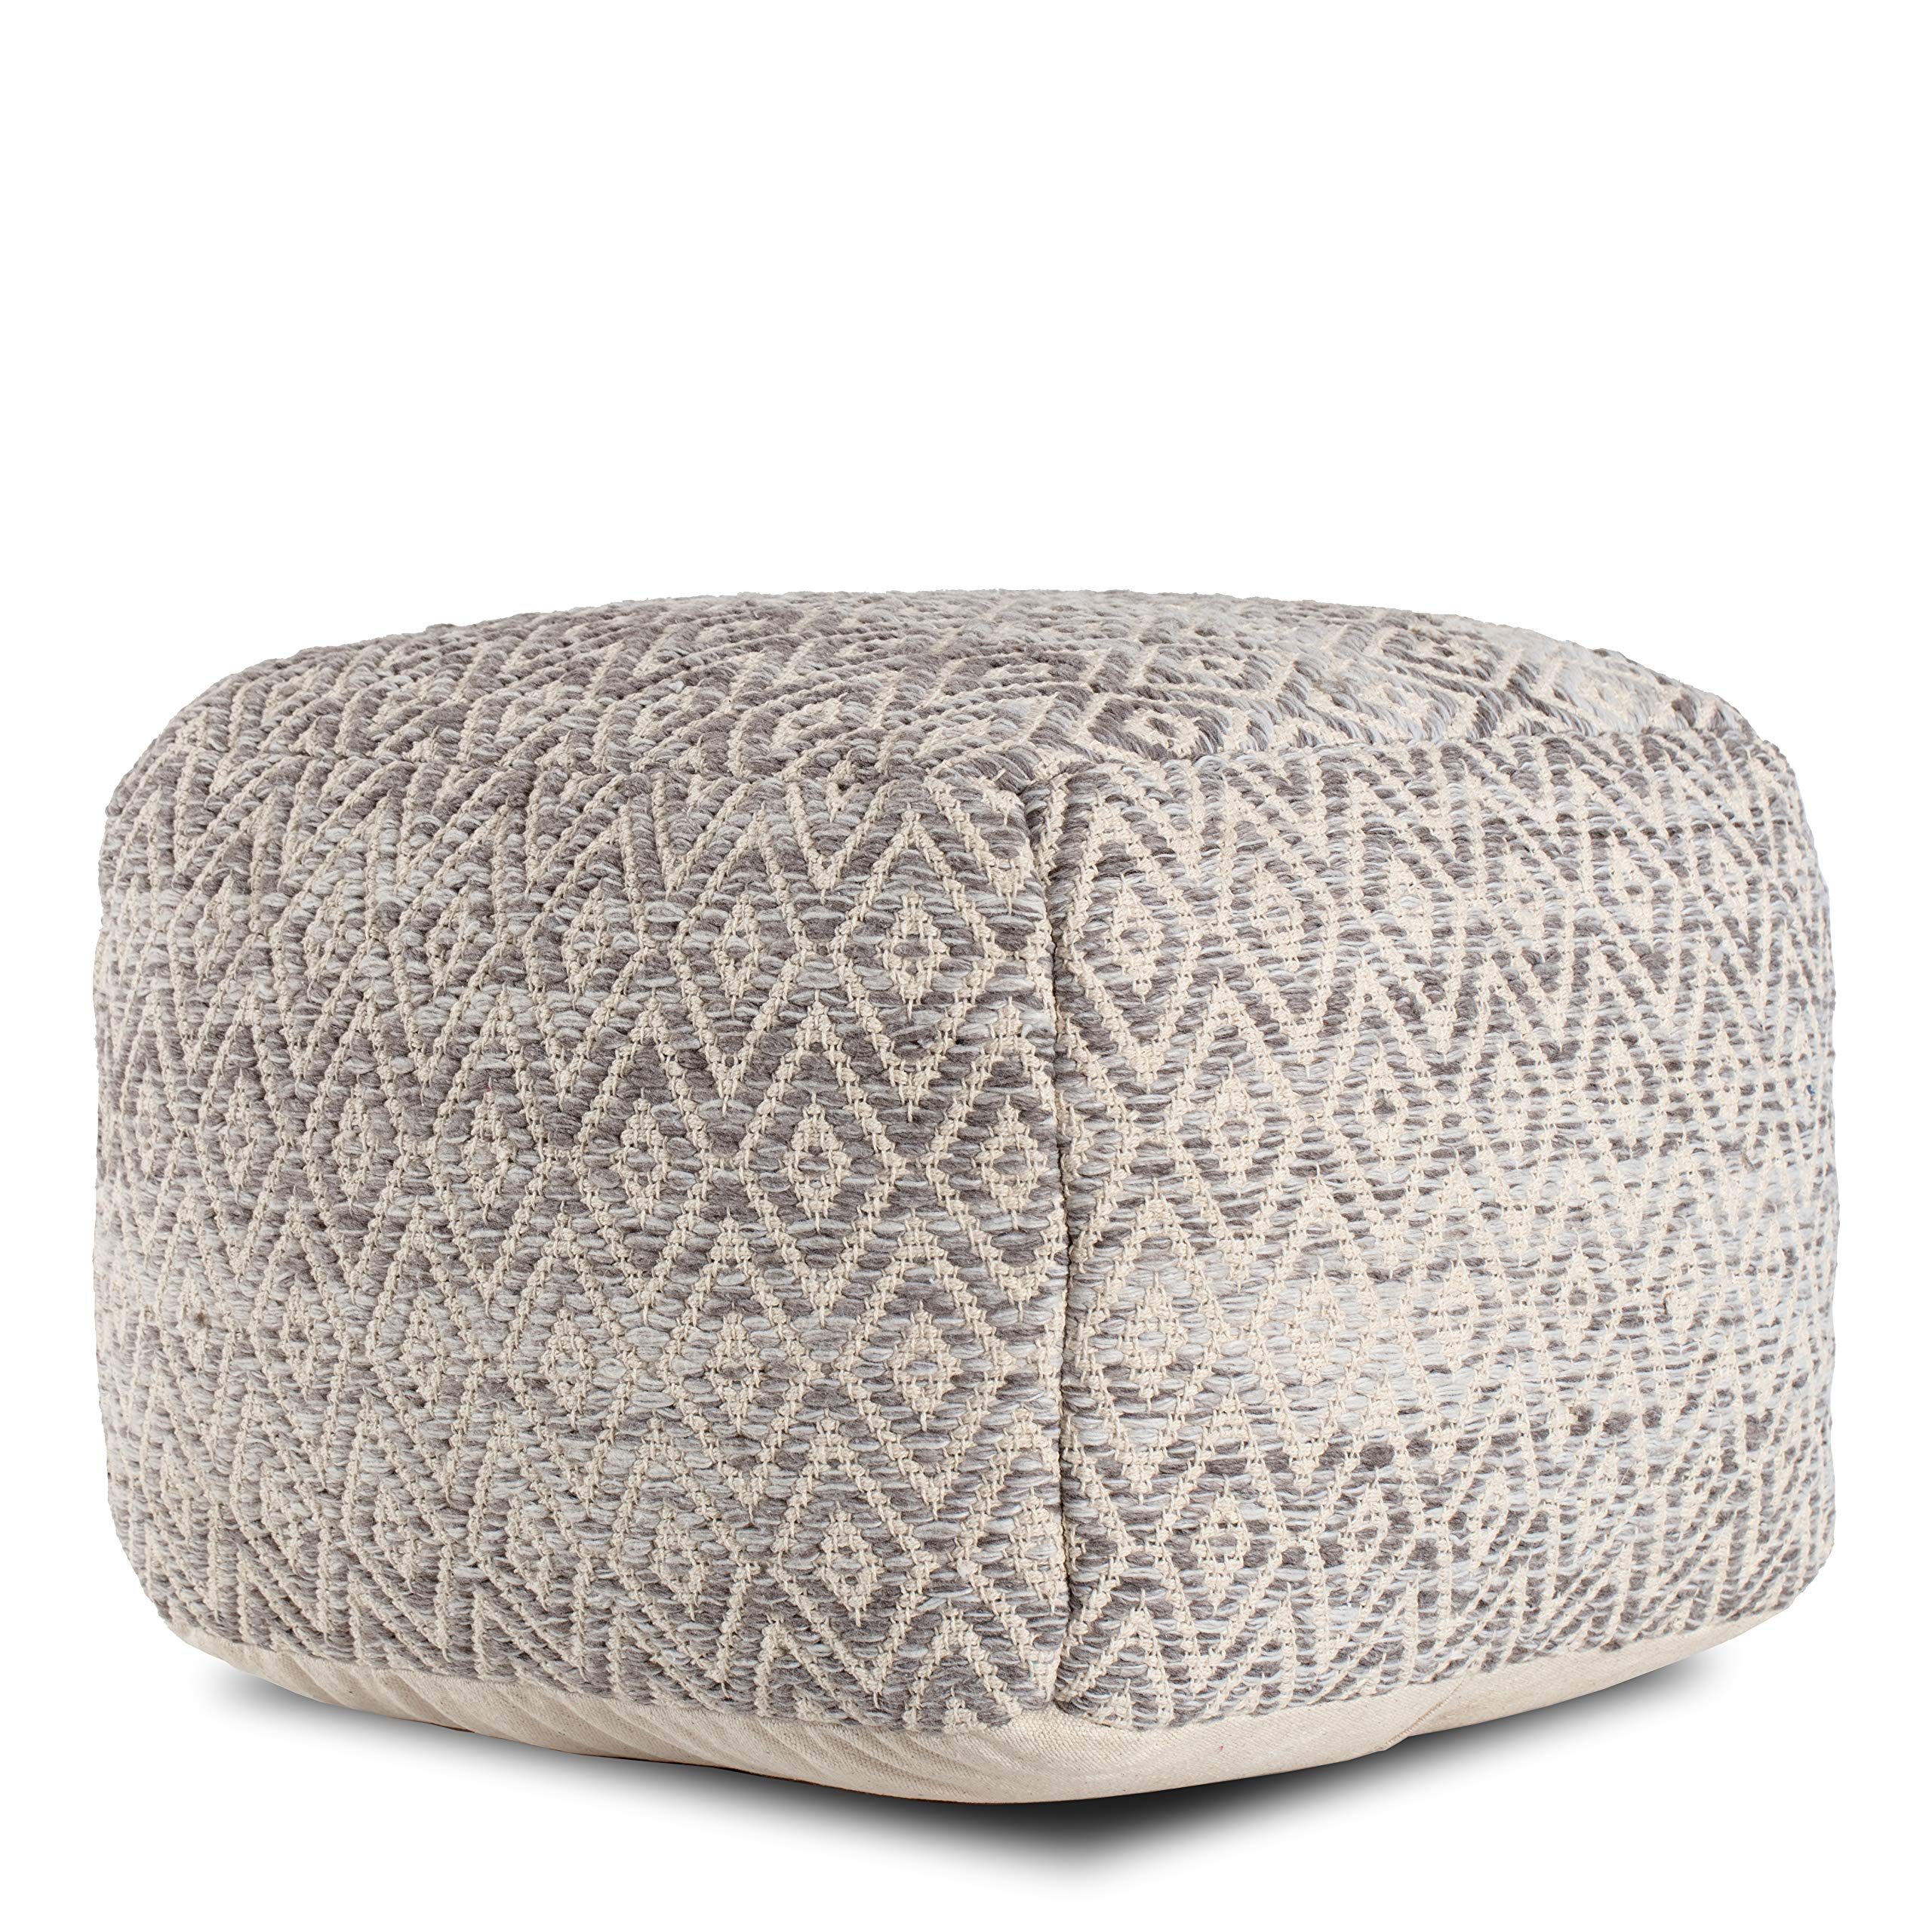 Anji Mountain Square Pouf , 22'' x 22'' x 17'', Gray by Anji Mountain